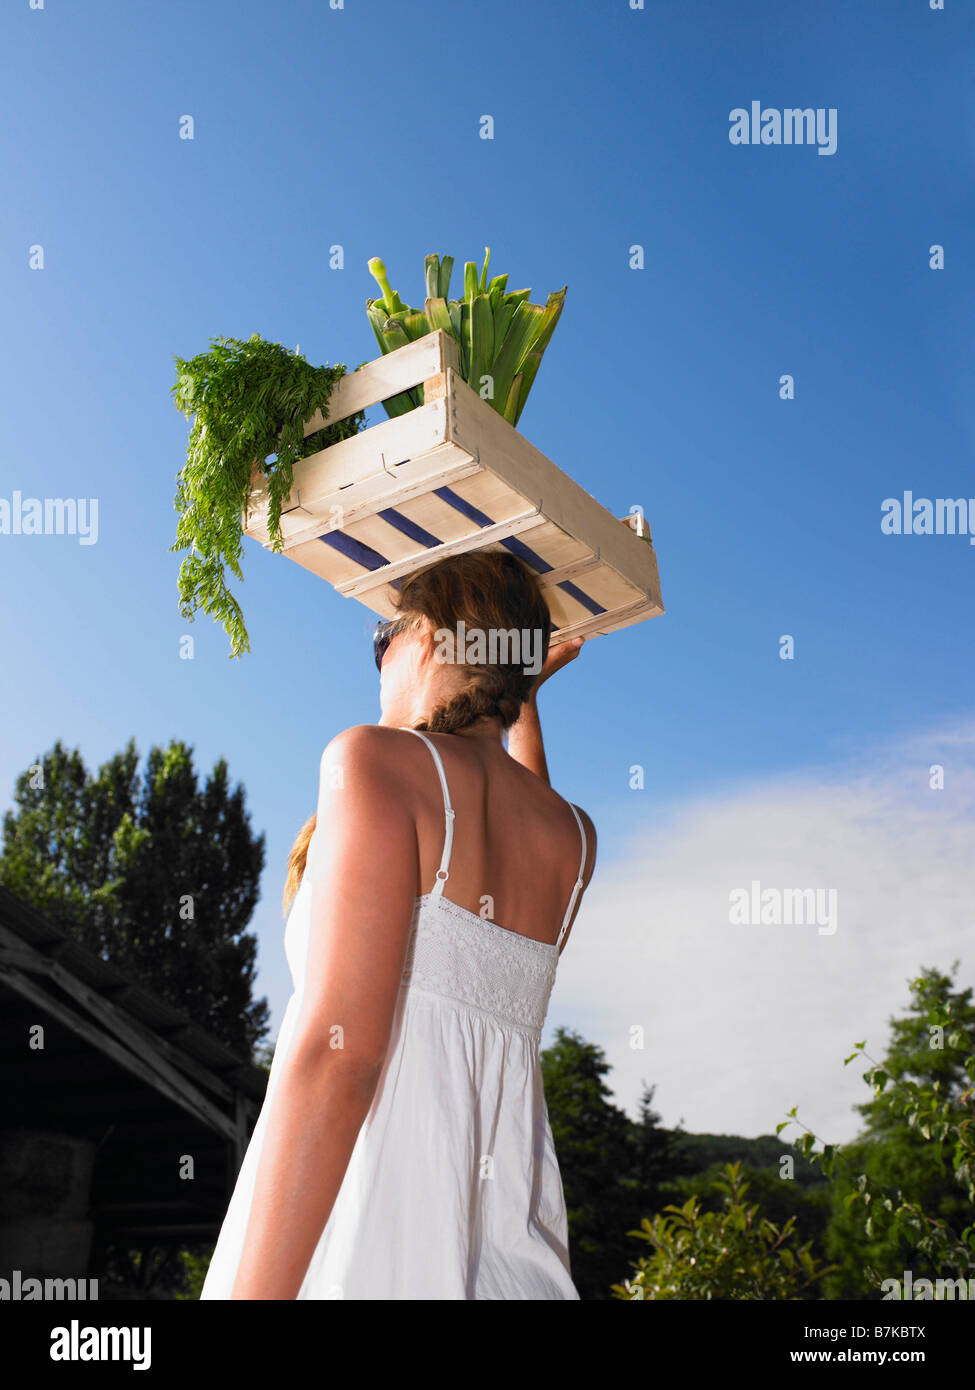 Woman carrying basket of vegetables - Stock Image